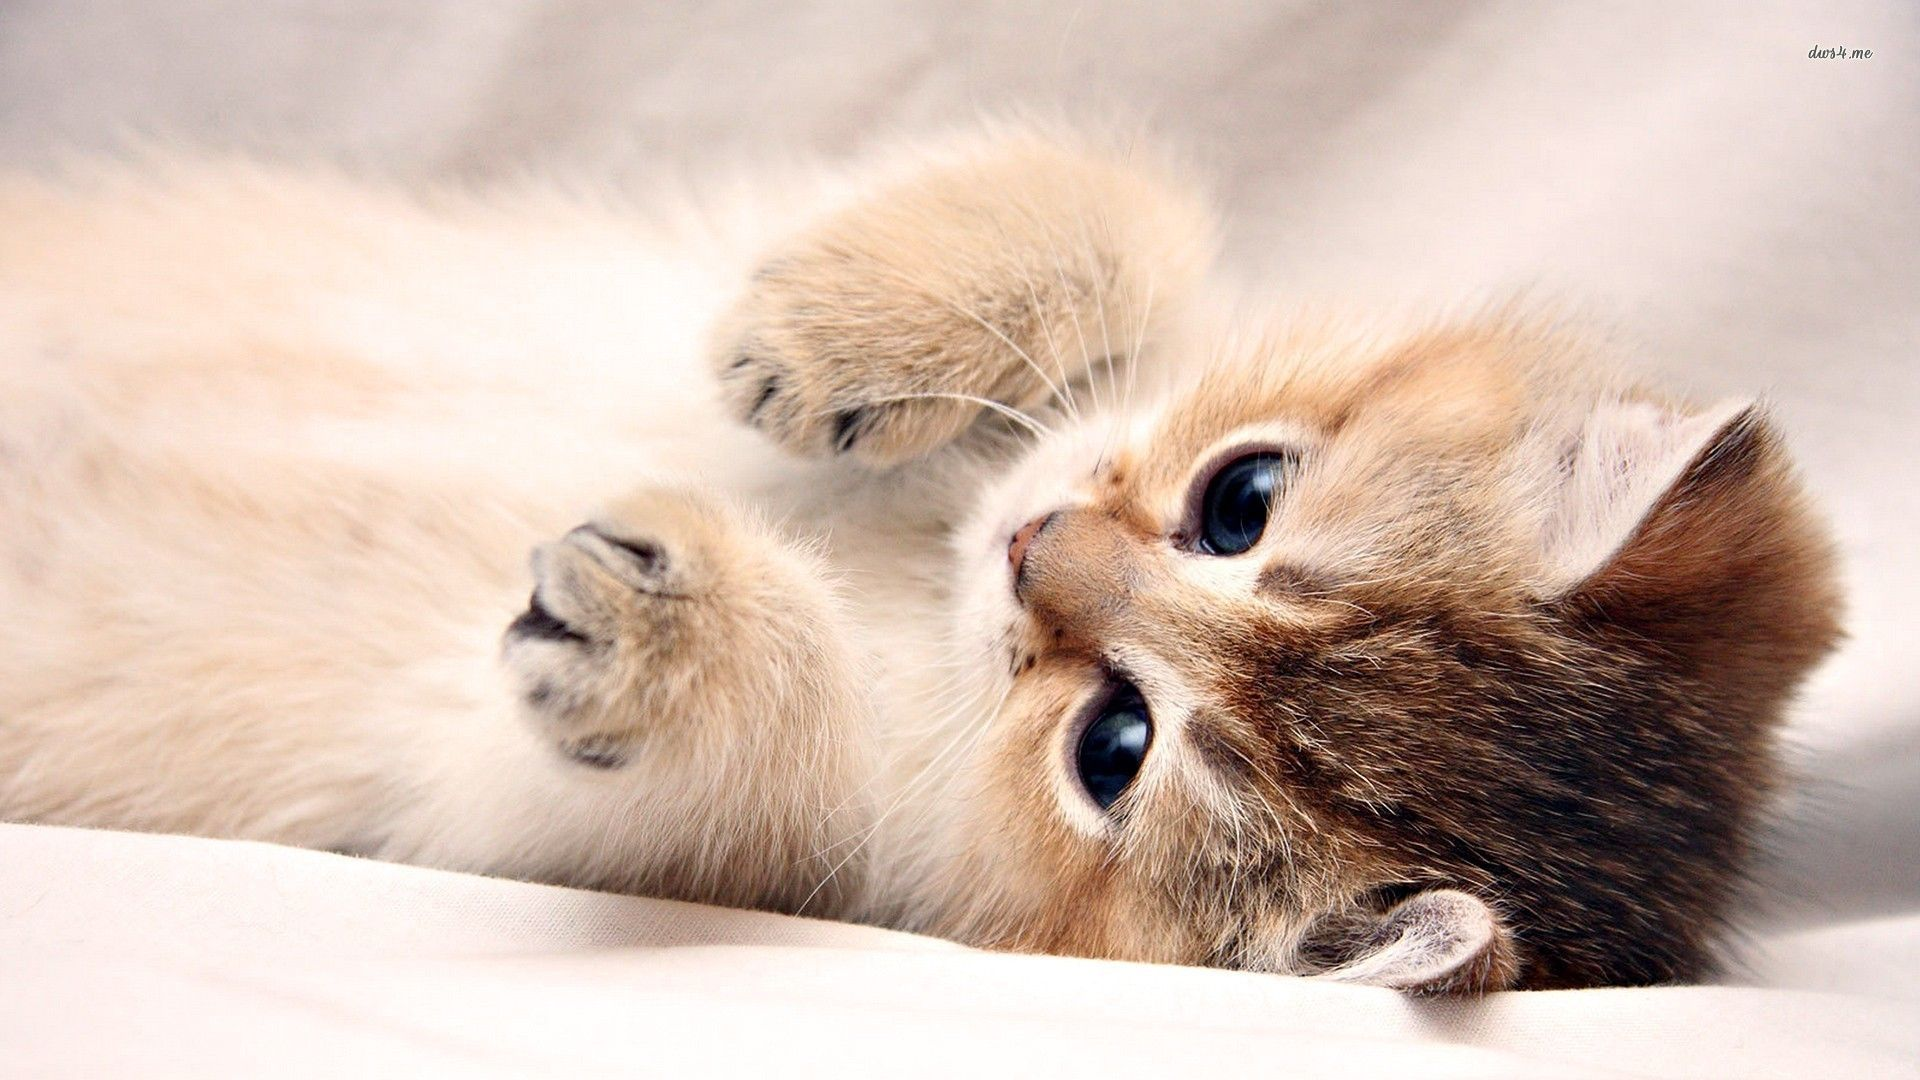 Kitten Wallpaper 1280x800 Download Best Hd Desktop Wallpapers